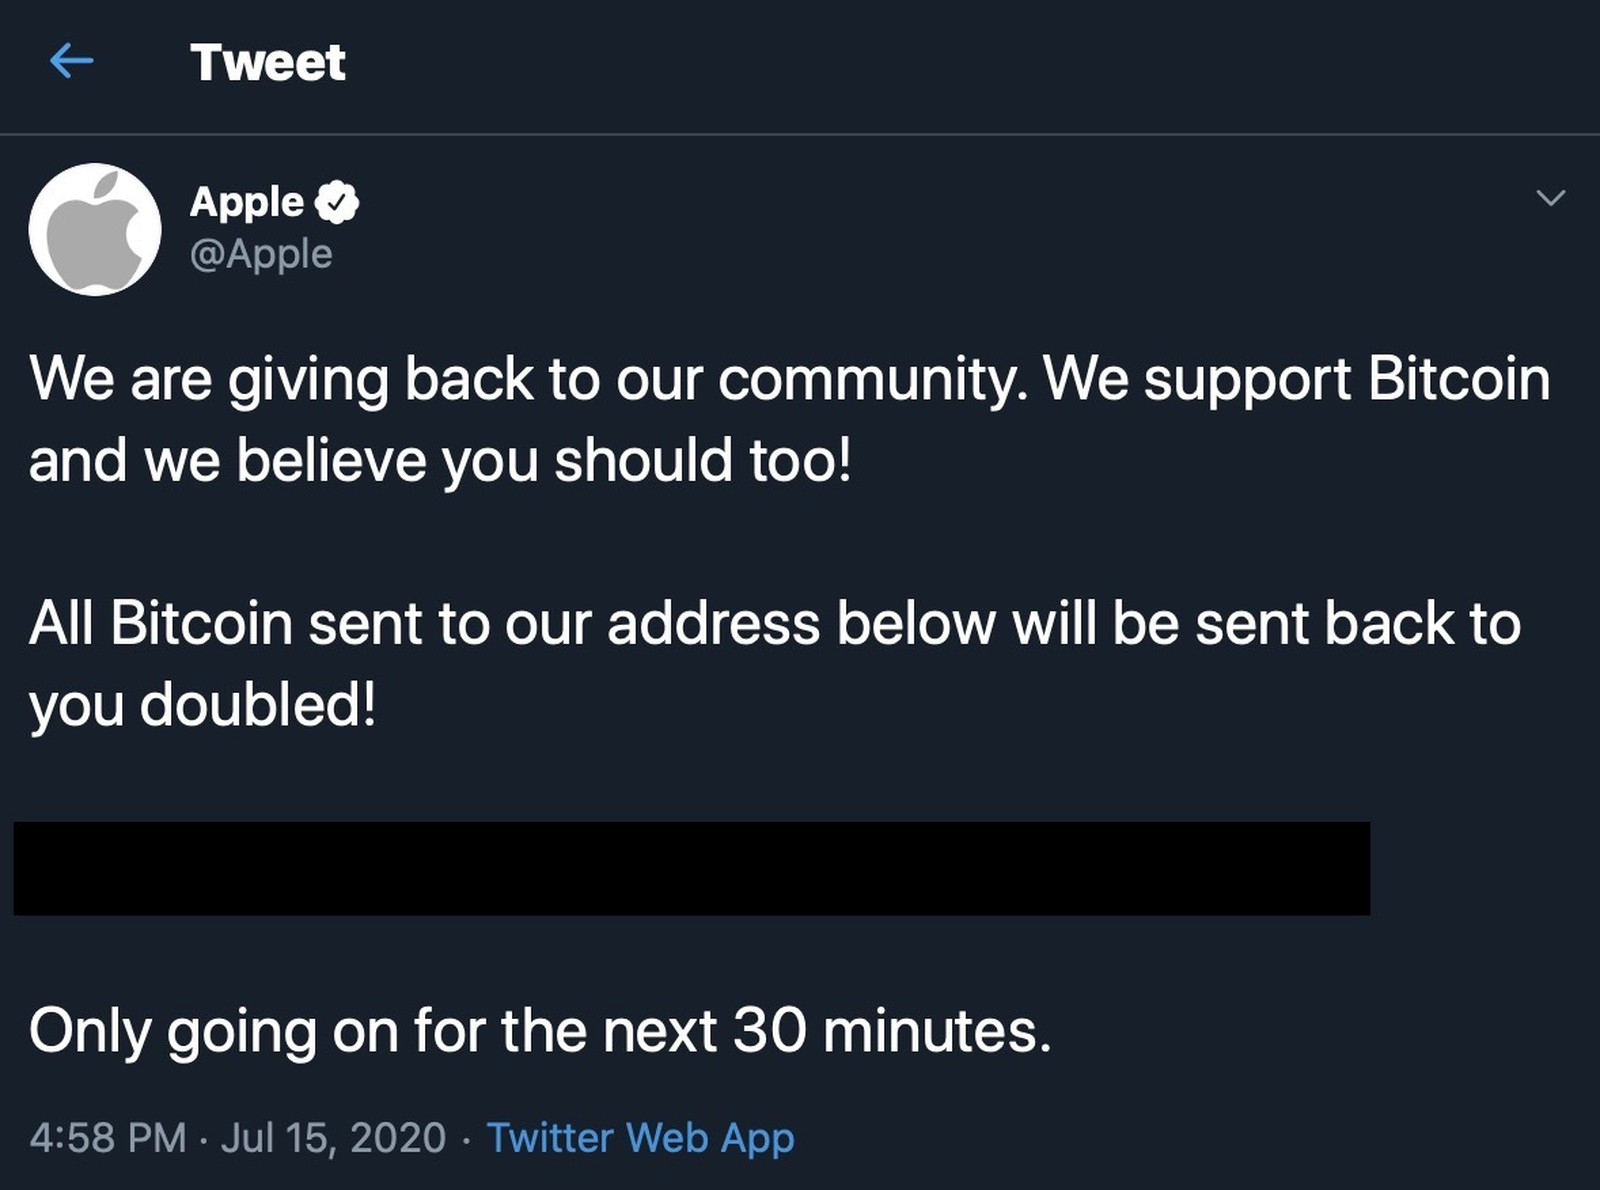 L'account Twitter di Apple hackerato da truffatori di Bitcoin